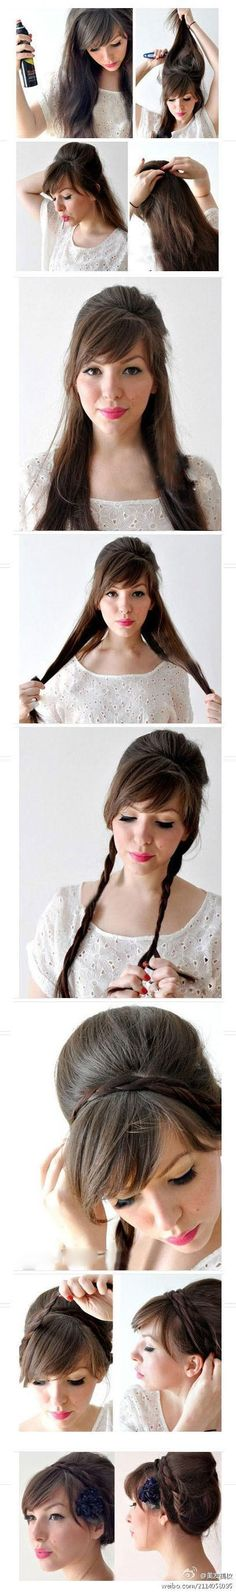 I have really short hair now, but if I ever let it grow back out, I want to try this!